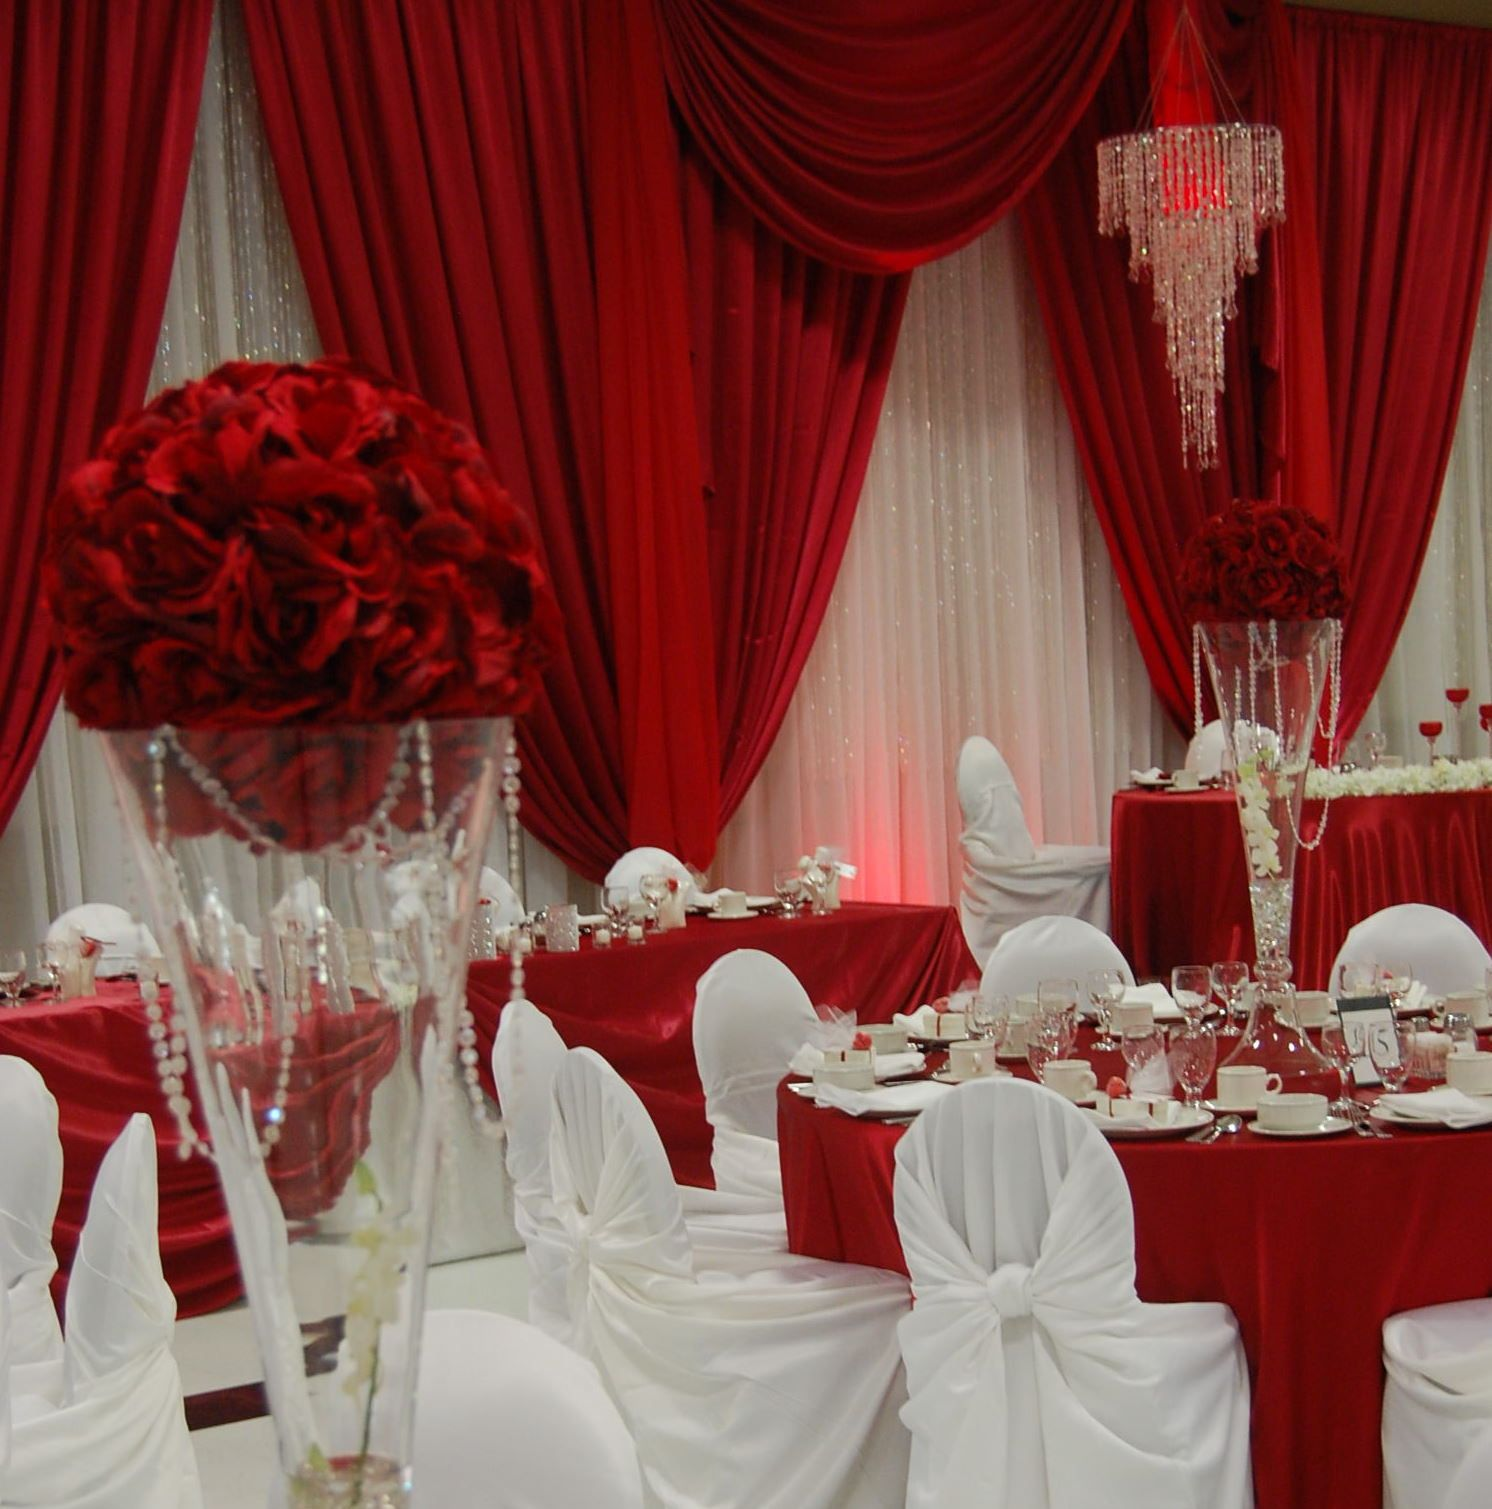 Oh My Never Been A Fan Of Red And White Weddings But This